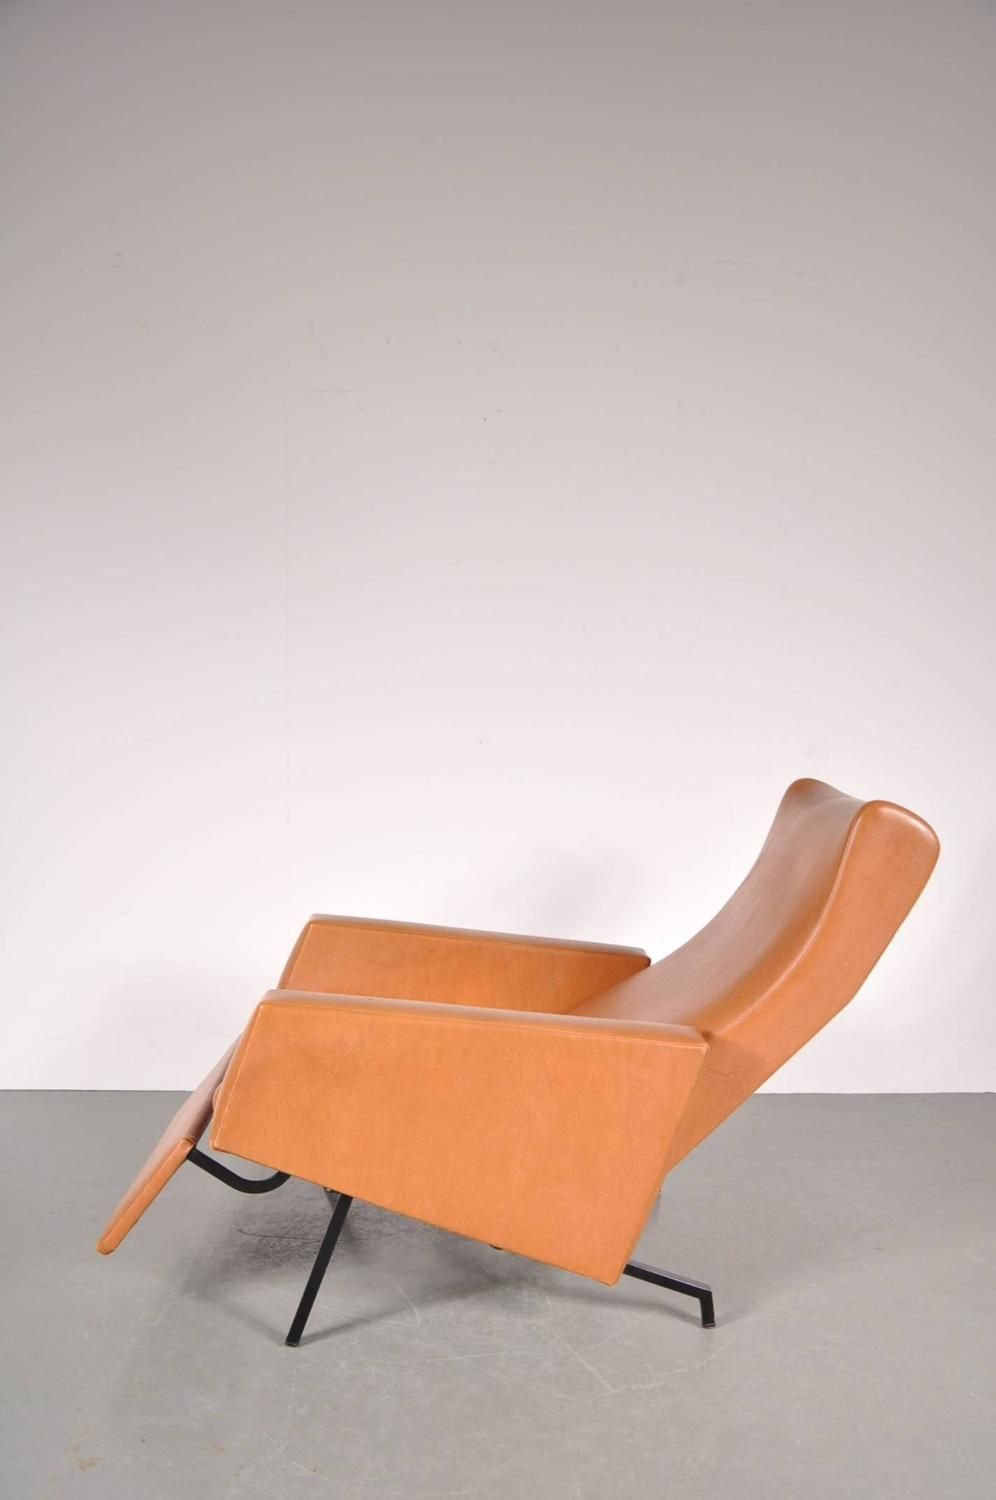 Trelax Chair By Pierre Guariche Manufactured By Meurop Belgium Circa 1950 1stdibs Com Vintage Lounge Chair Reclining Sofa Chair